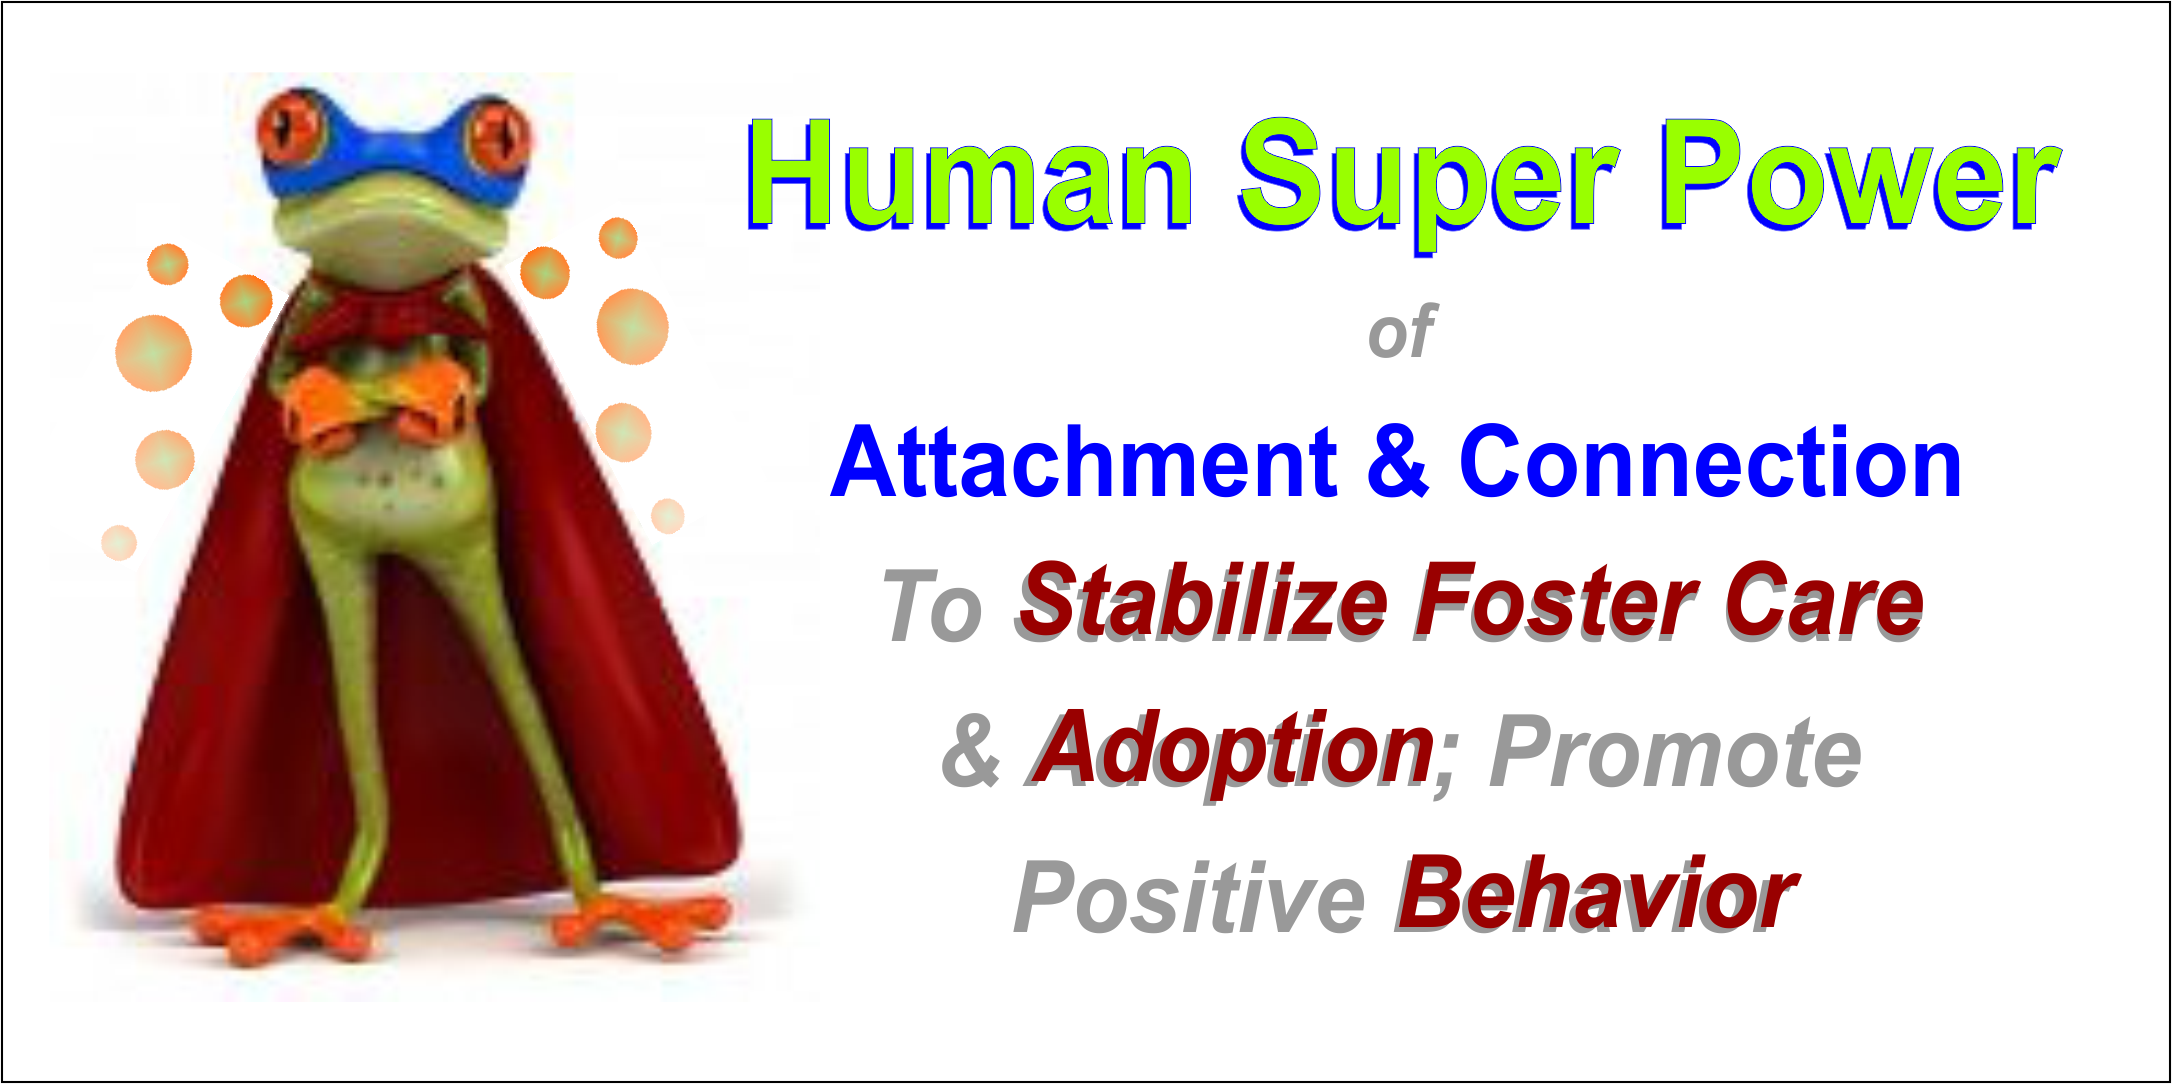 Human Super Power to Promote Behavior, Attachment and Bonding for RAD, Adoption, Foster Care,